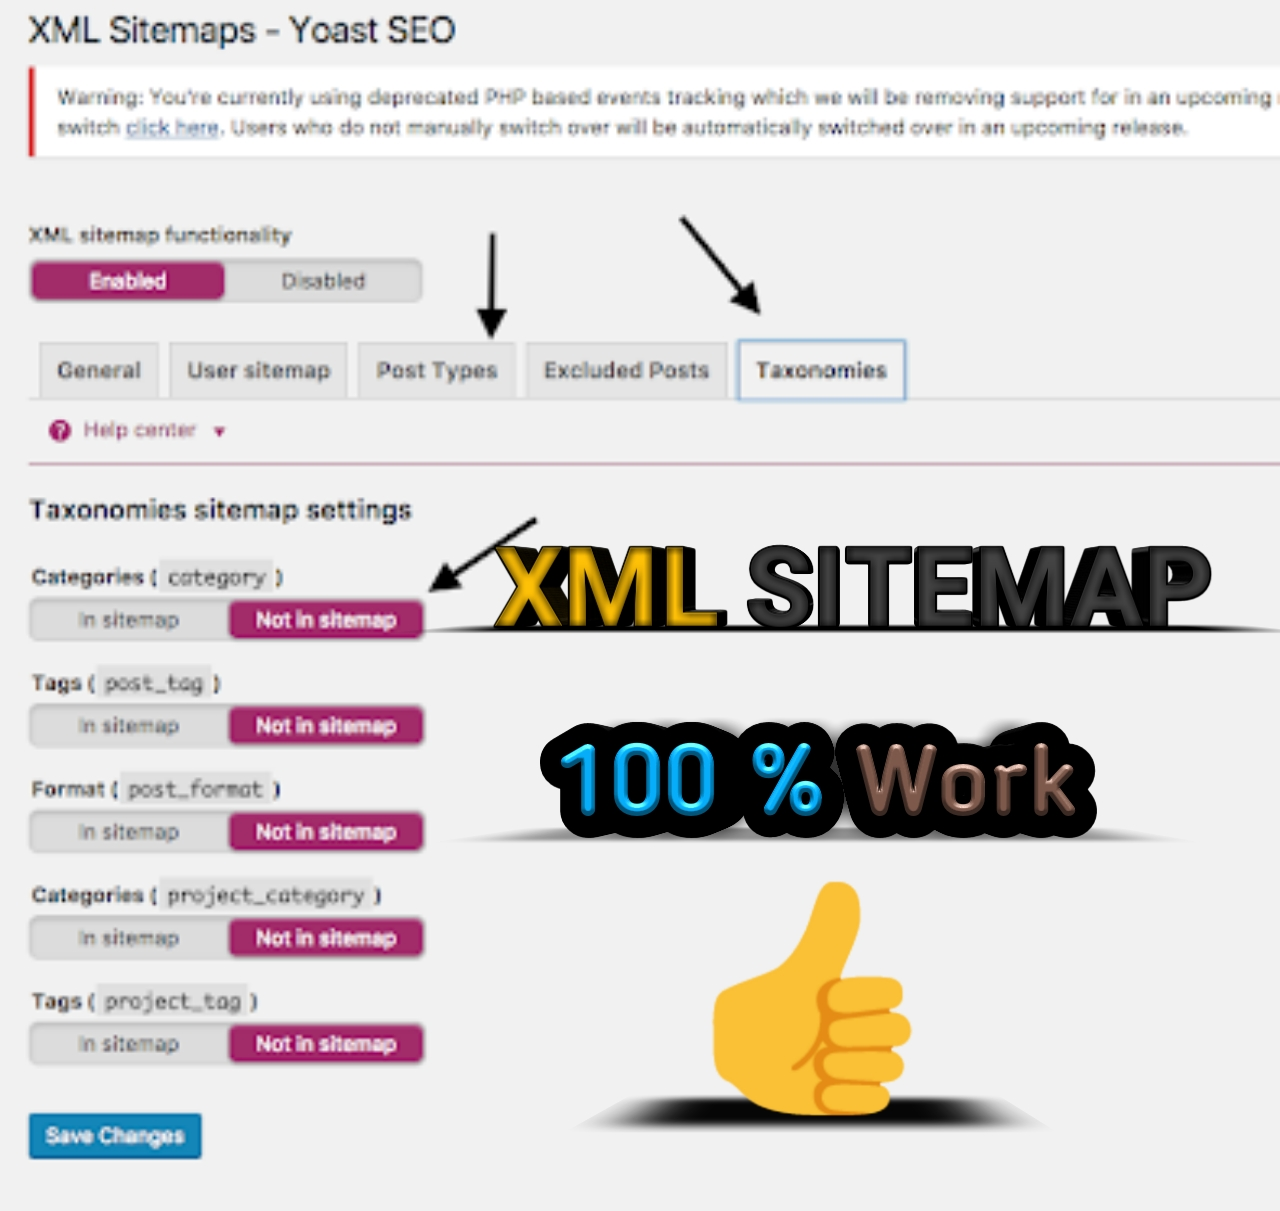 Bing Sitemap: Create A Professional Sitemap For Your Website In Google